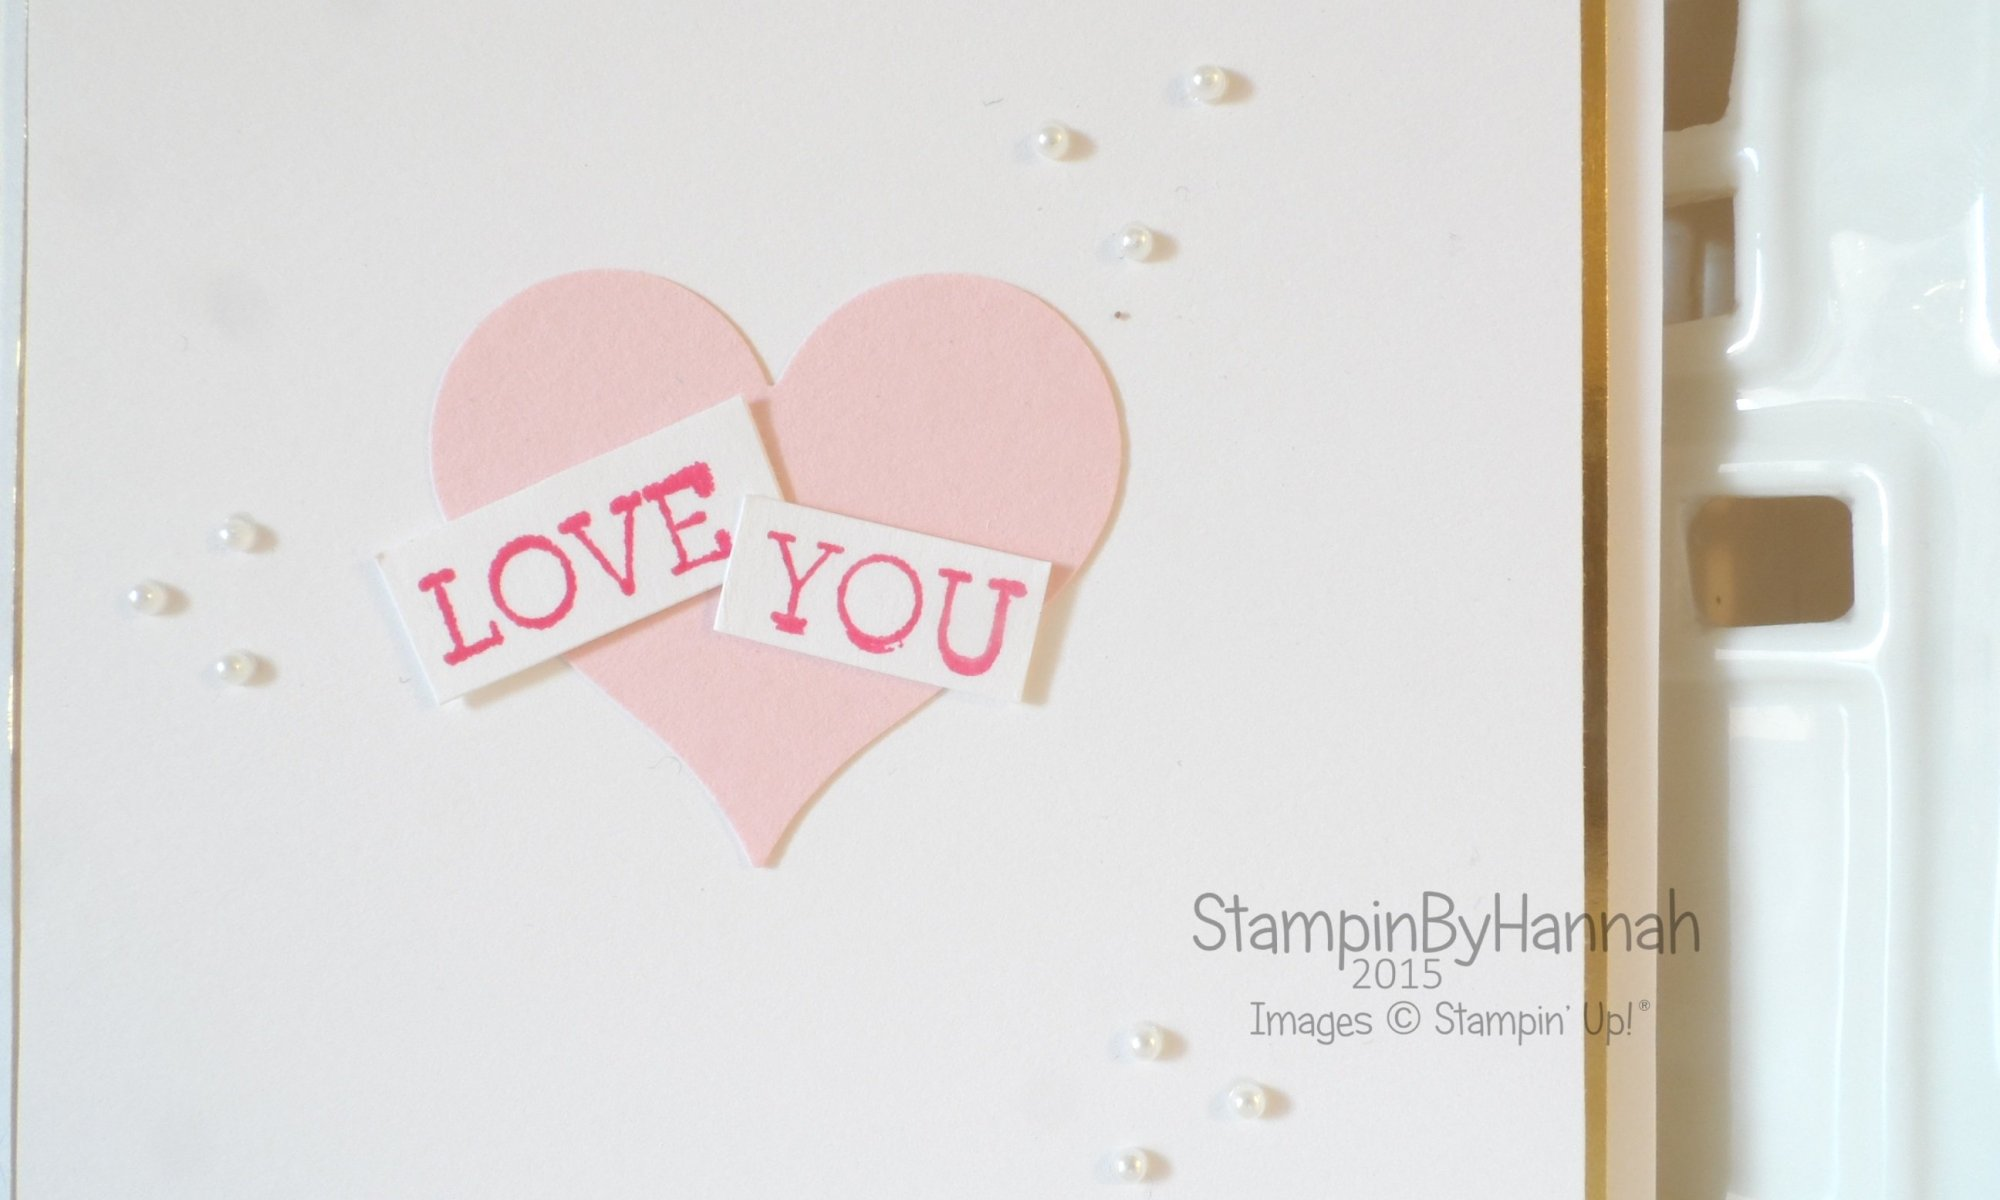 Stampin' Up! UK Valentines card